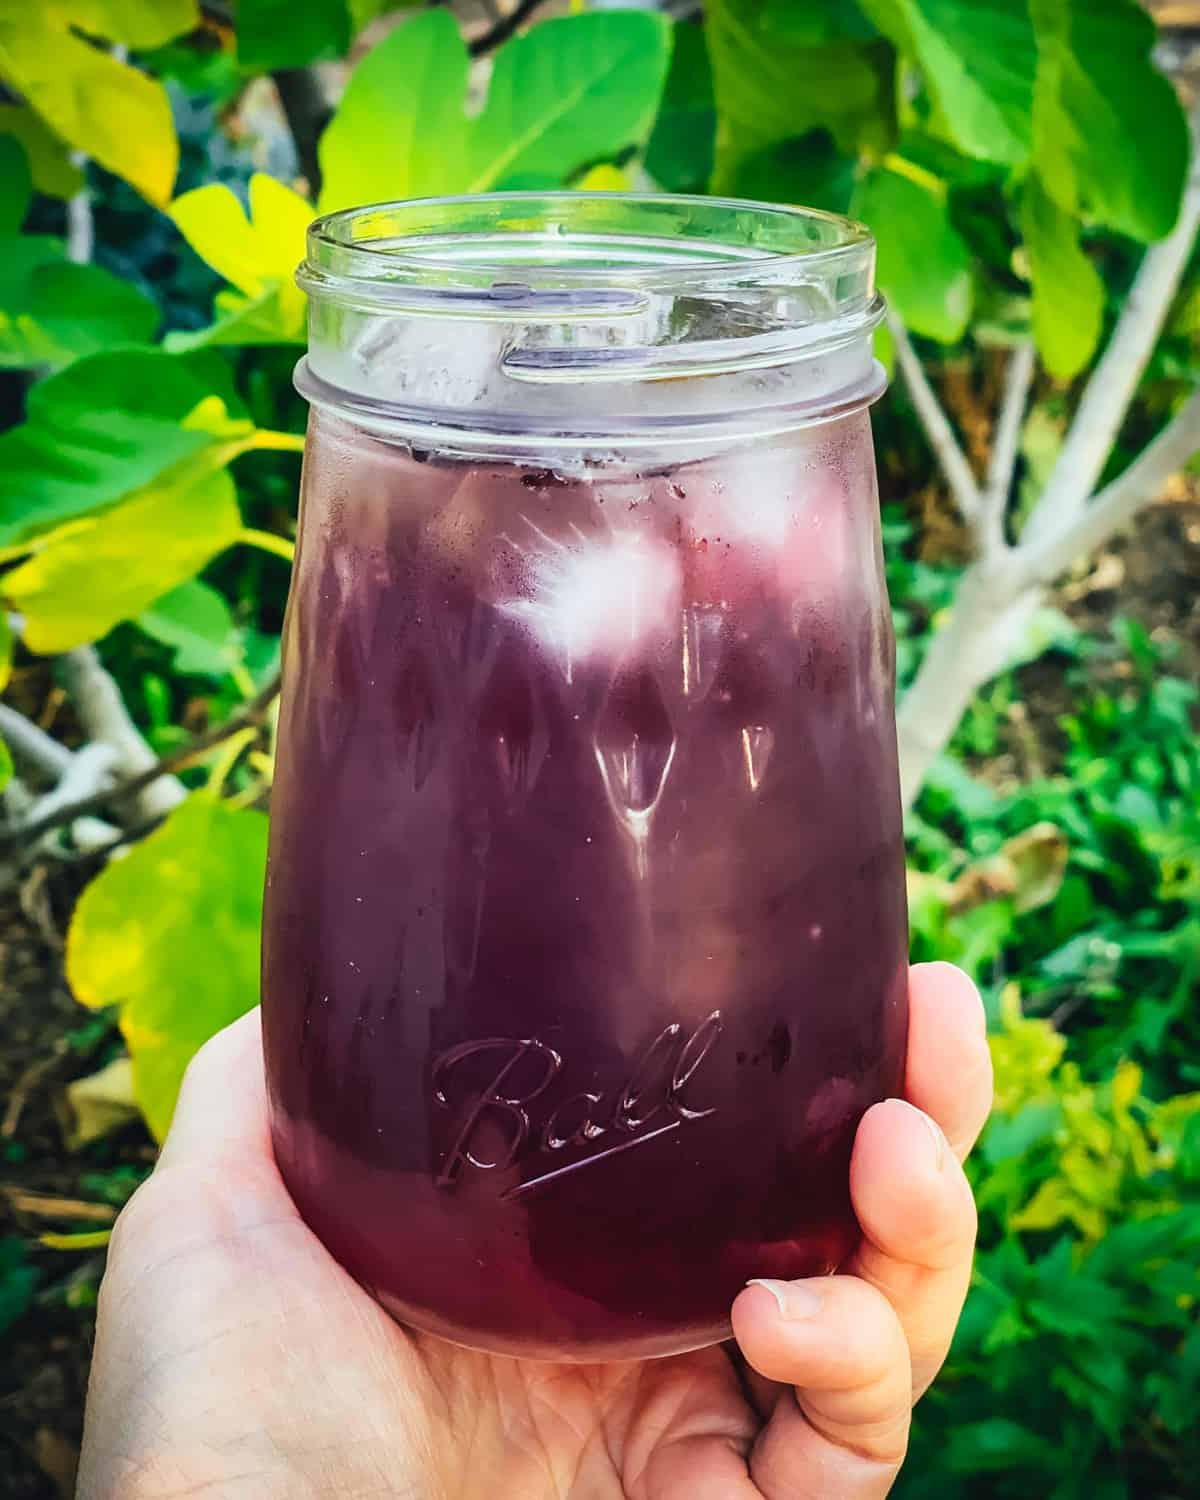 a hand holding elderberry cocktail in a ball flute jar